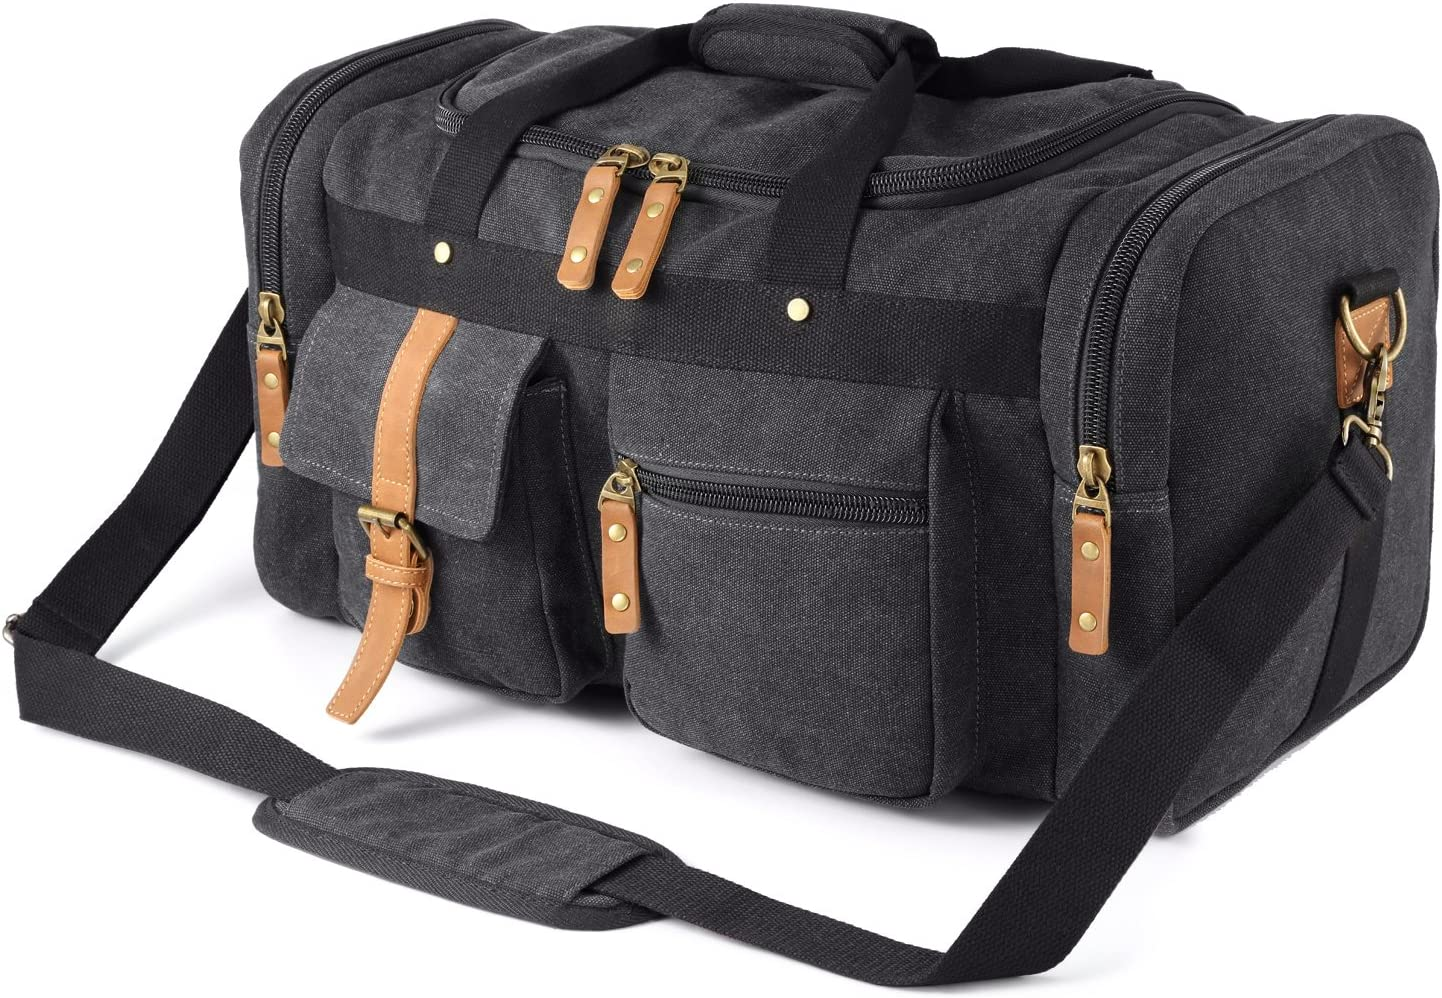 Plambag Large Canvas Duffel Bag Overnight Travel Tote Weekend Bag Dark Gray